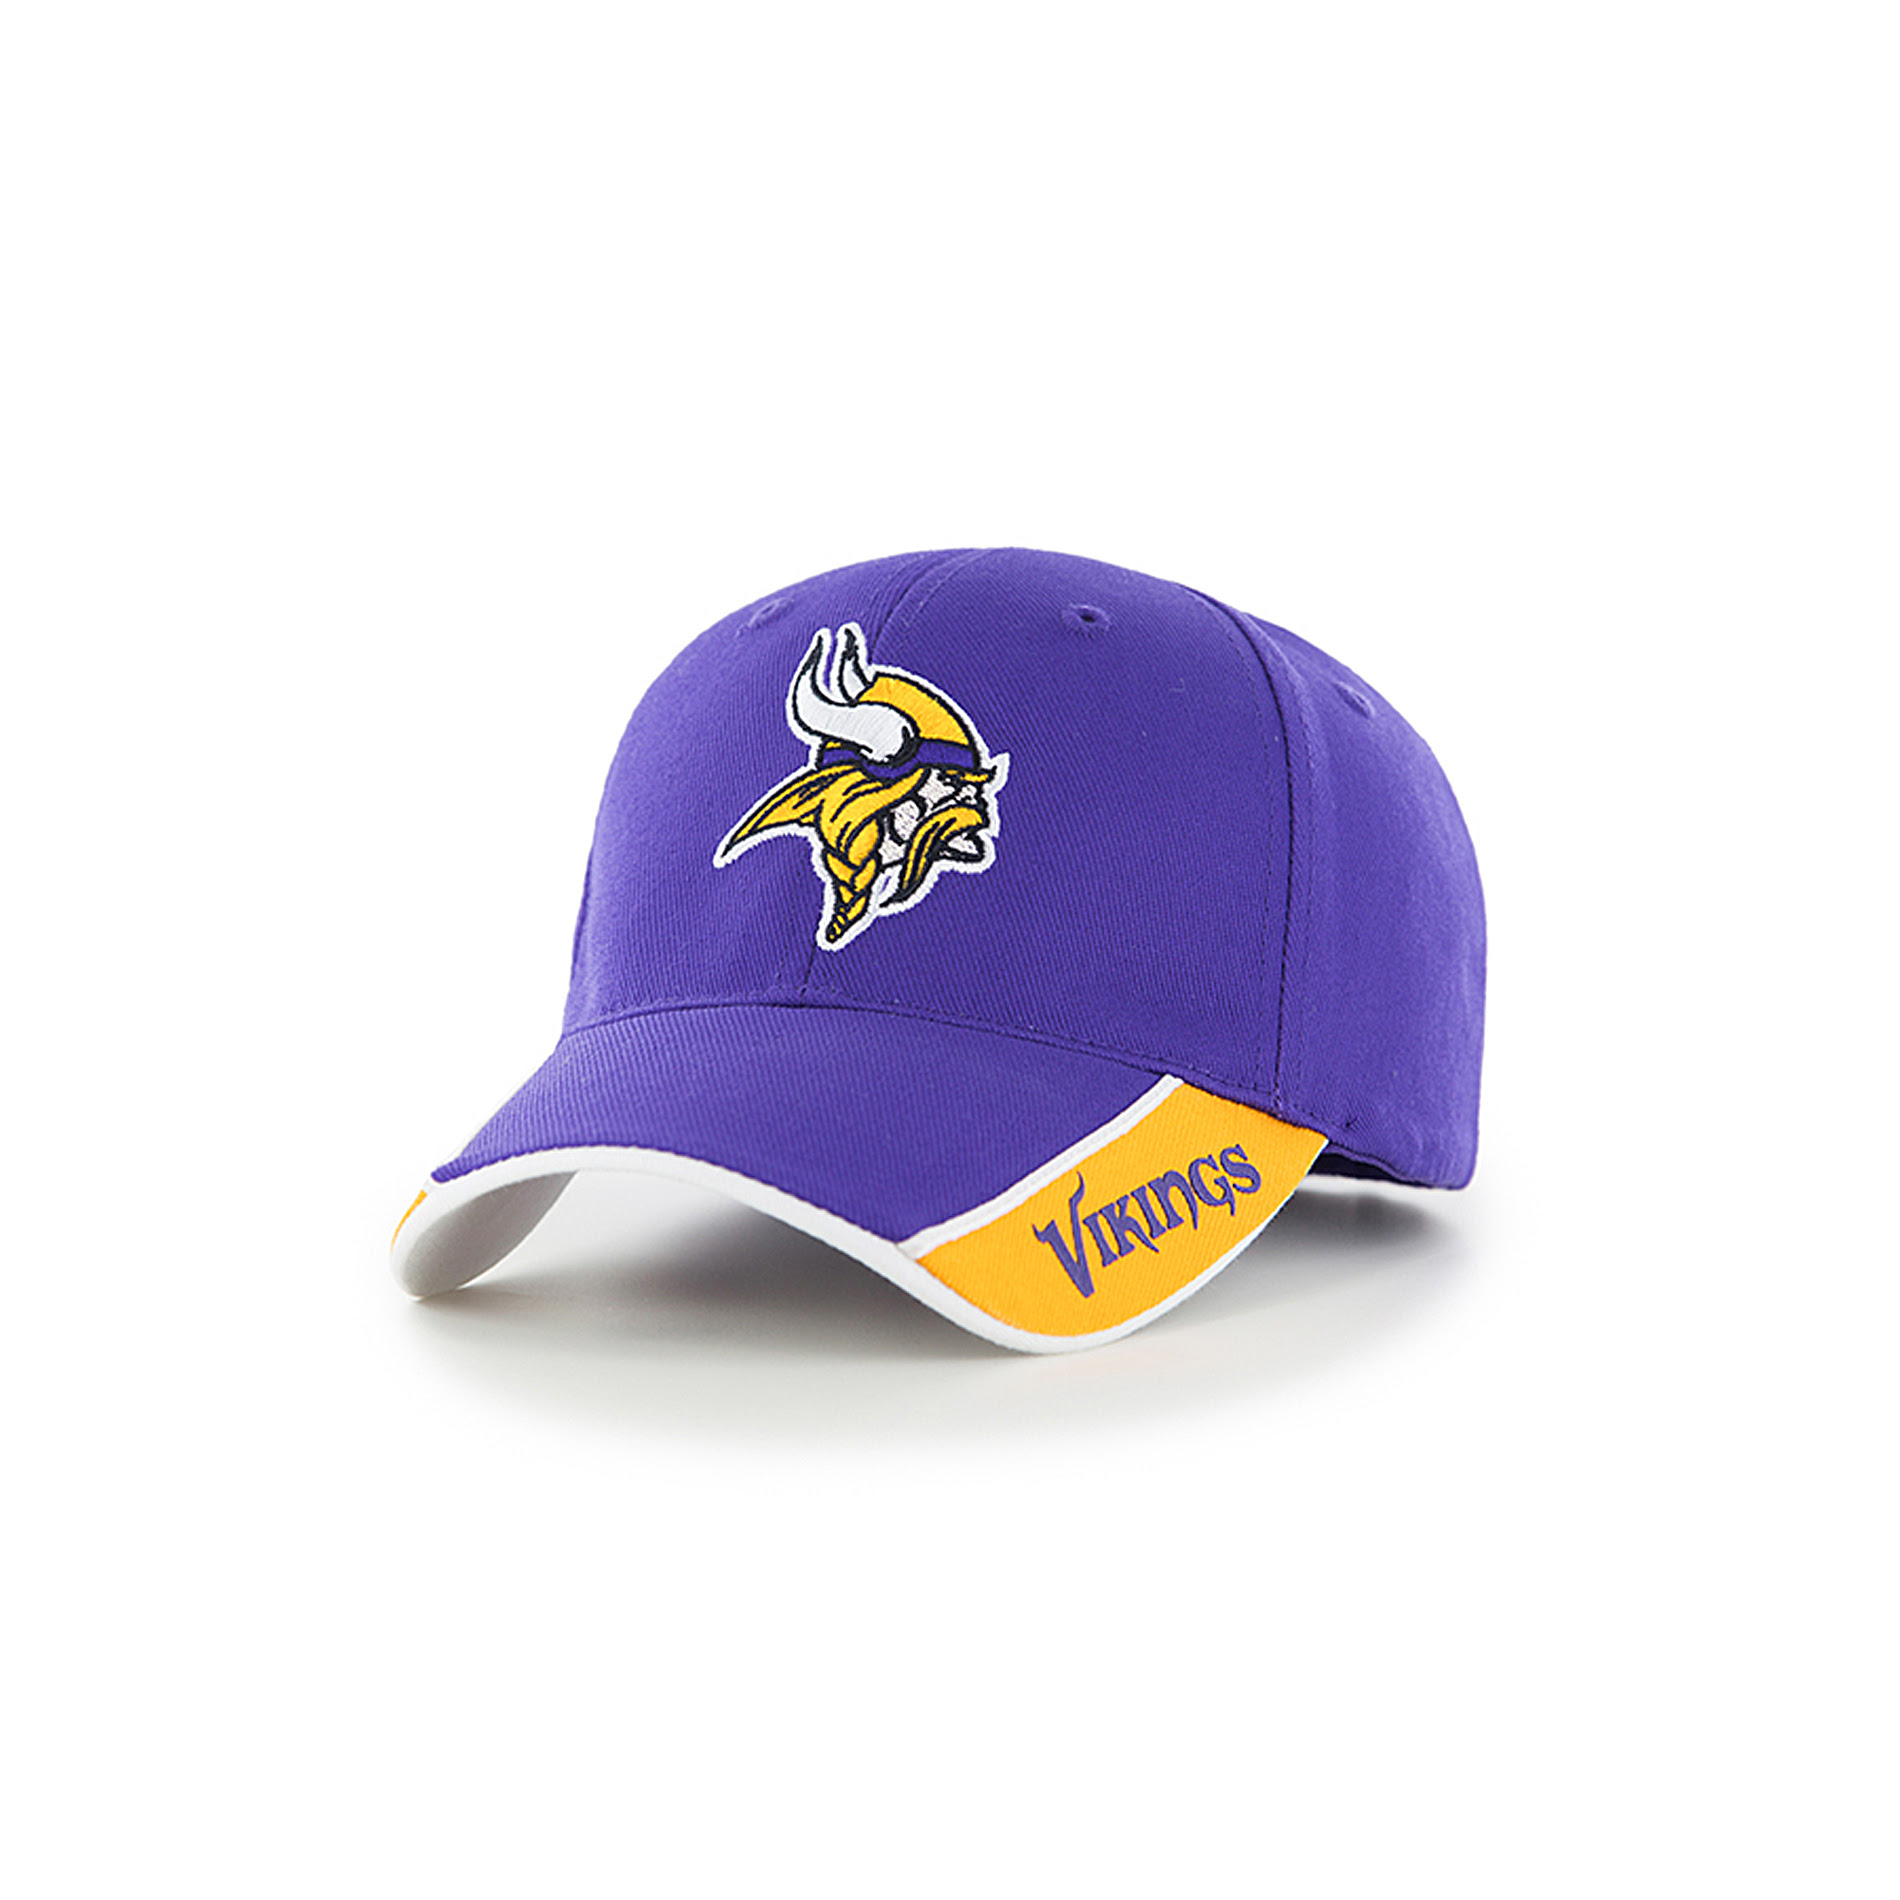 NFL Minnesota Vikings Mens Baseball Cap